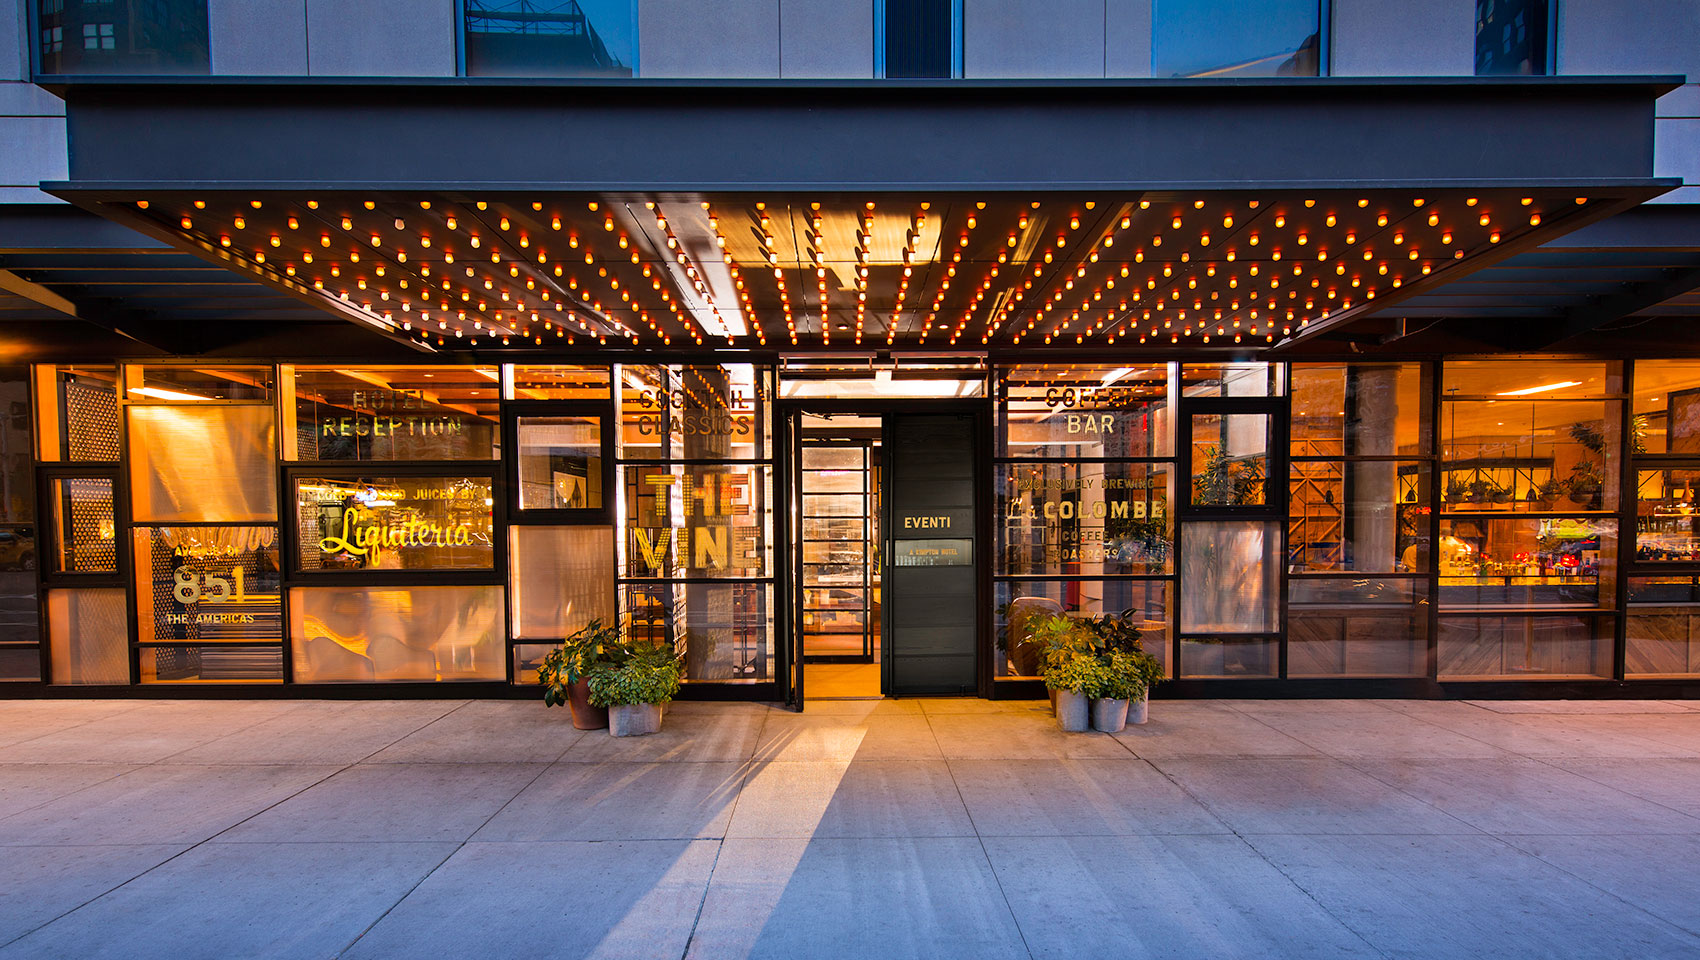 Kimpton Hotel Eventi front entrance façade with lighting and glass walls